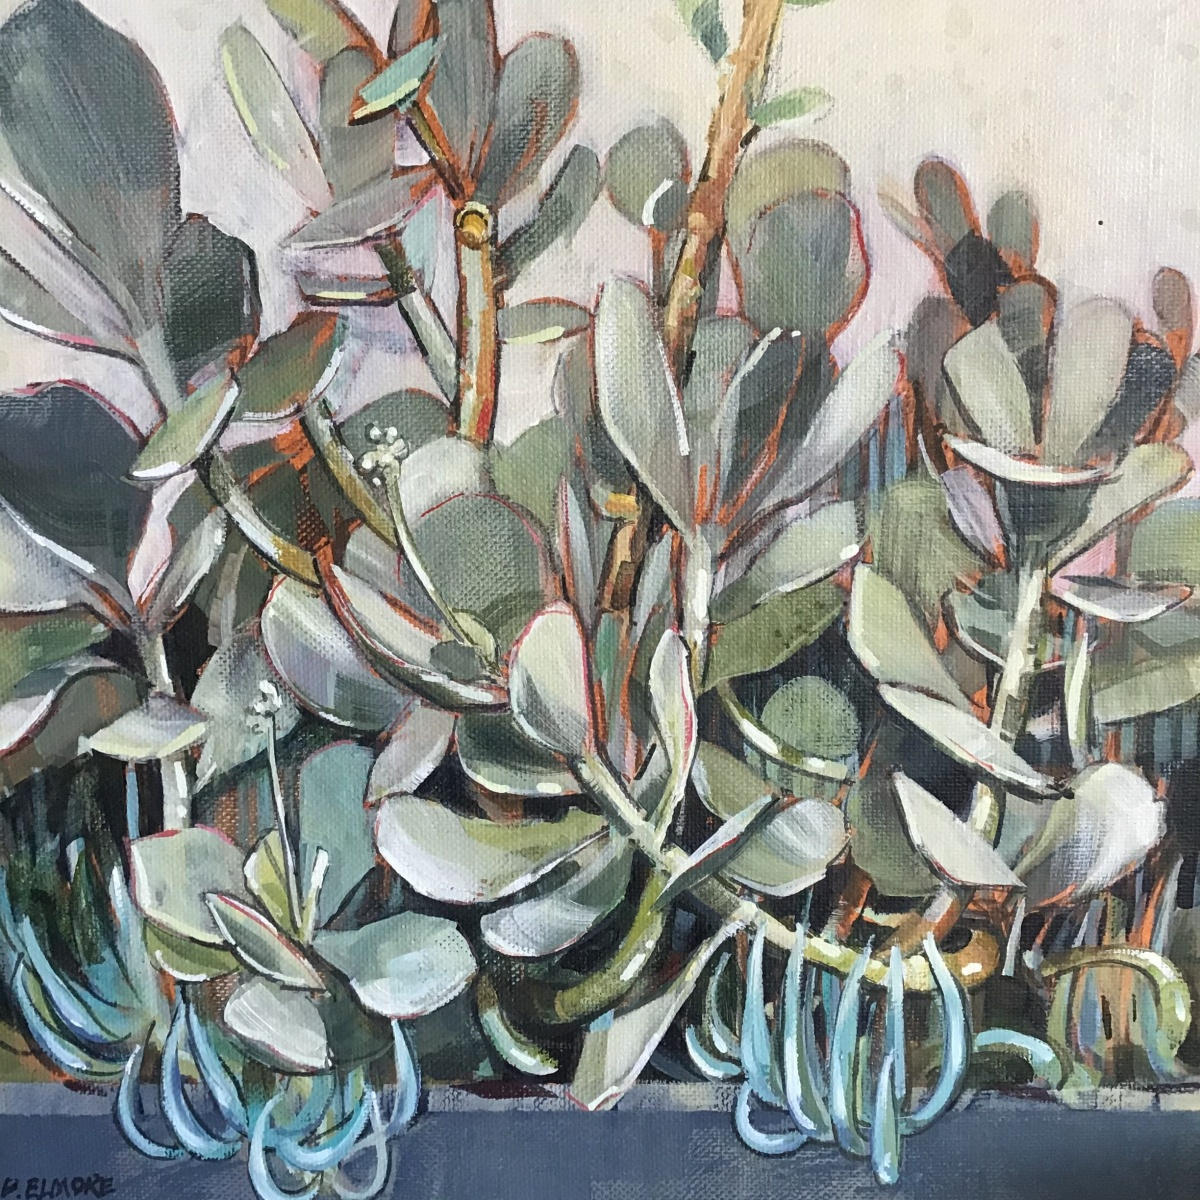 Bron Elmore - Succulent study in greys - Grey